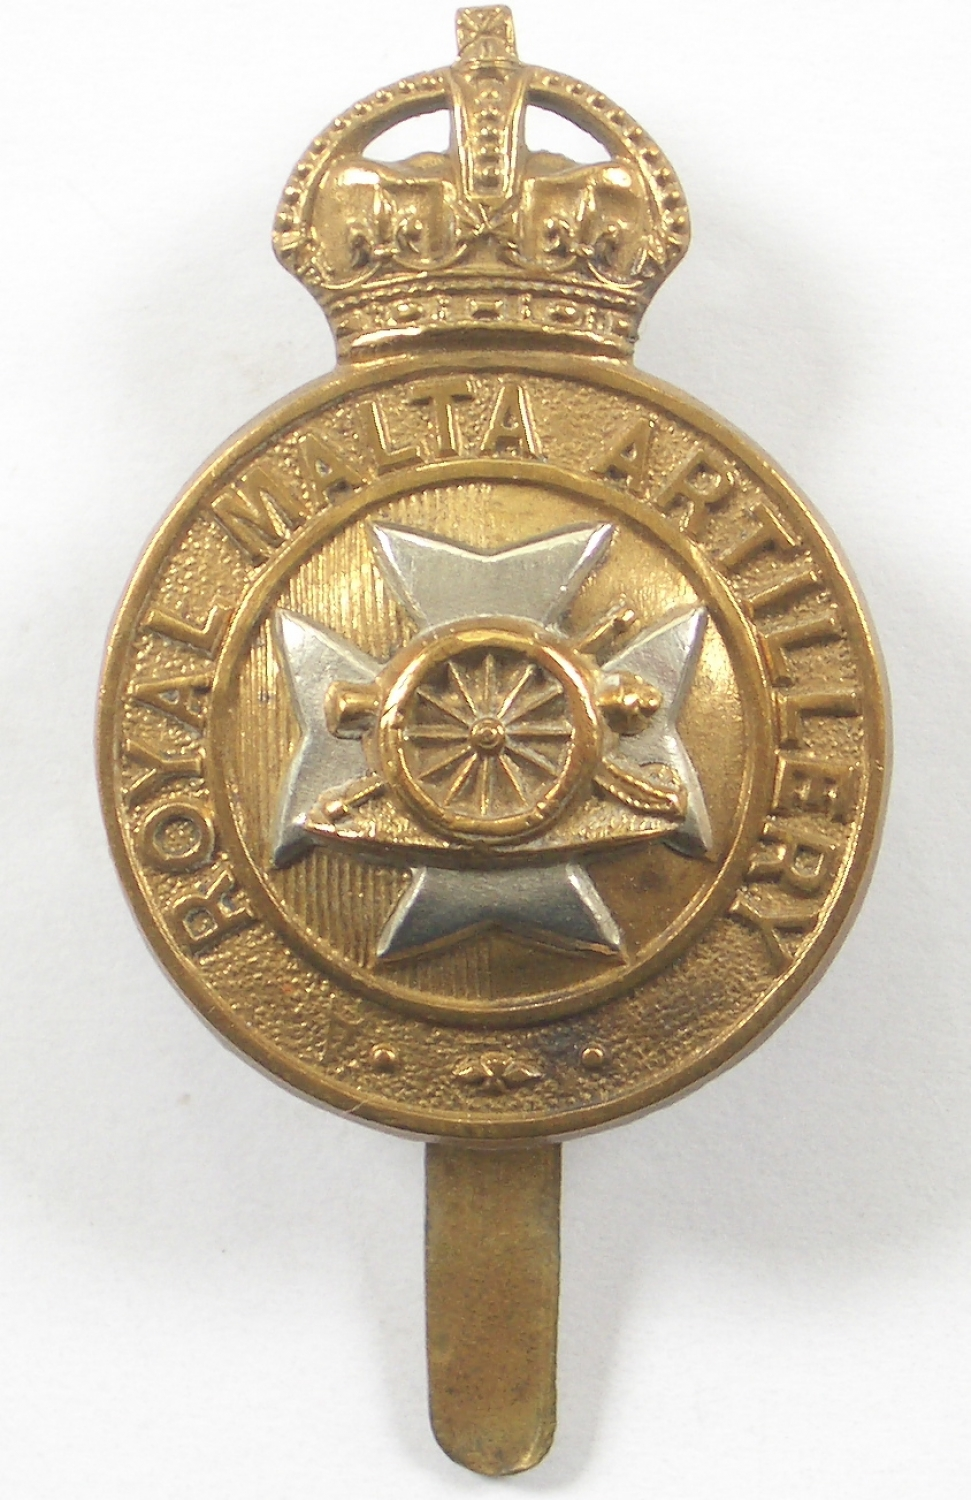 Royal Malta Artillery cap badge